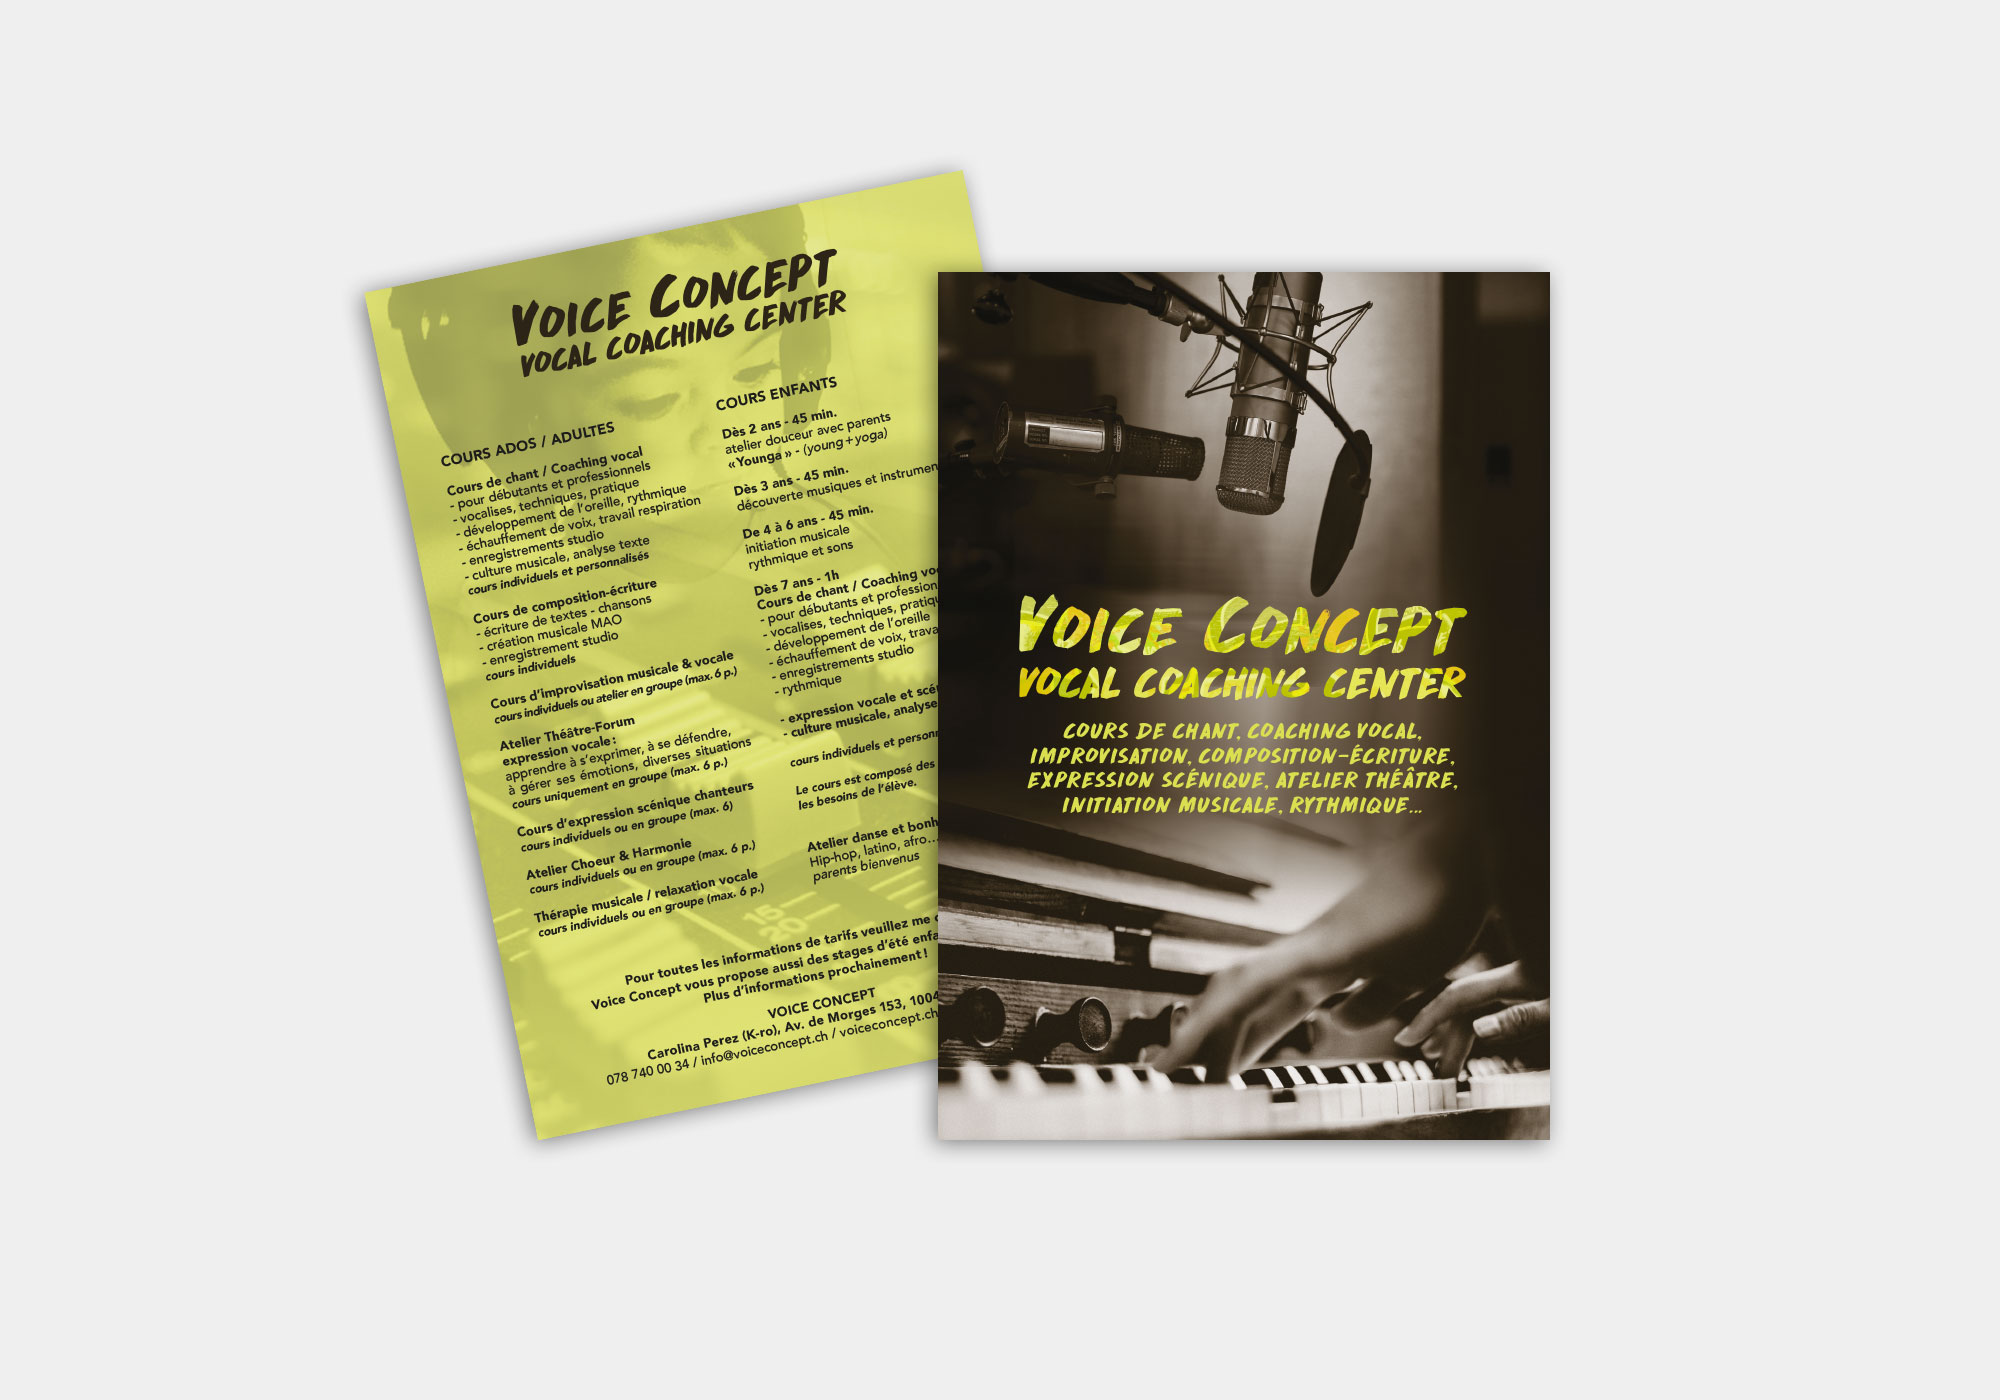 Flyer Voice Concept, cours adultes et enfants de chant et coching vocal, Lausanne